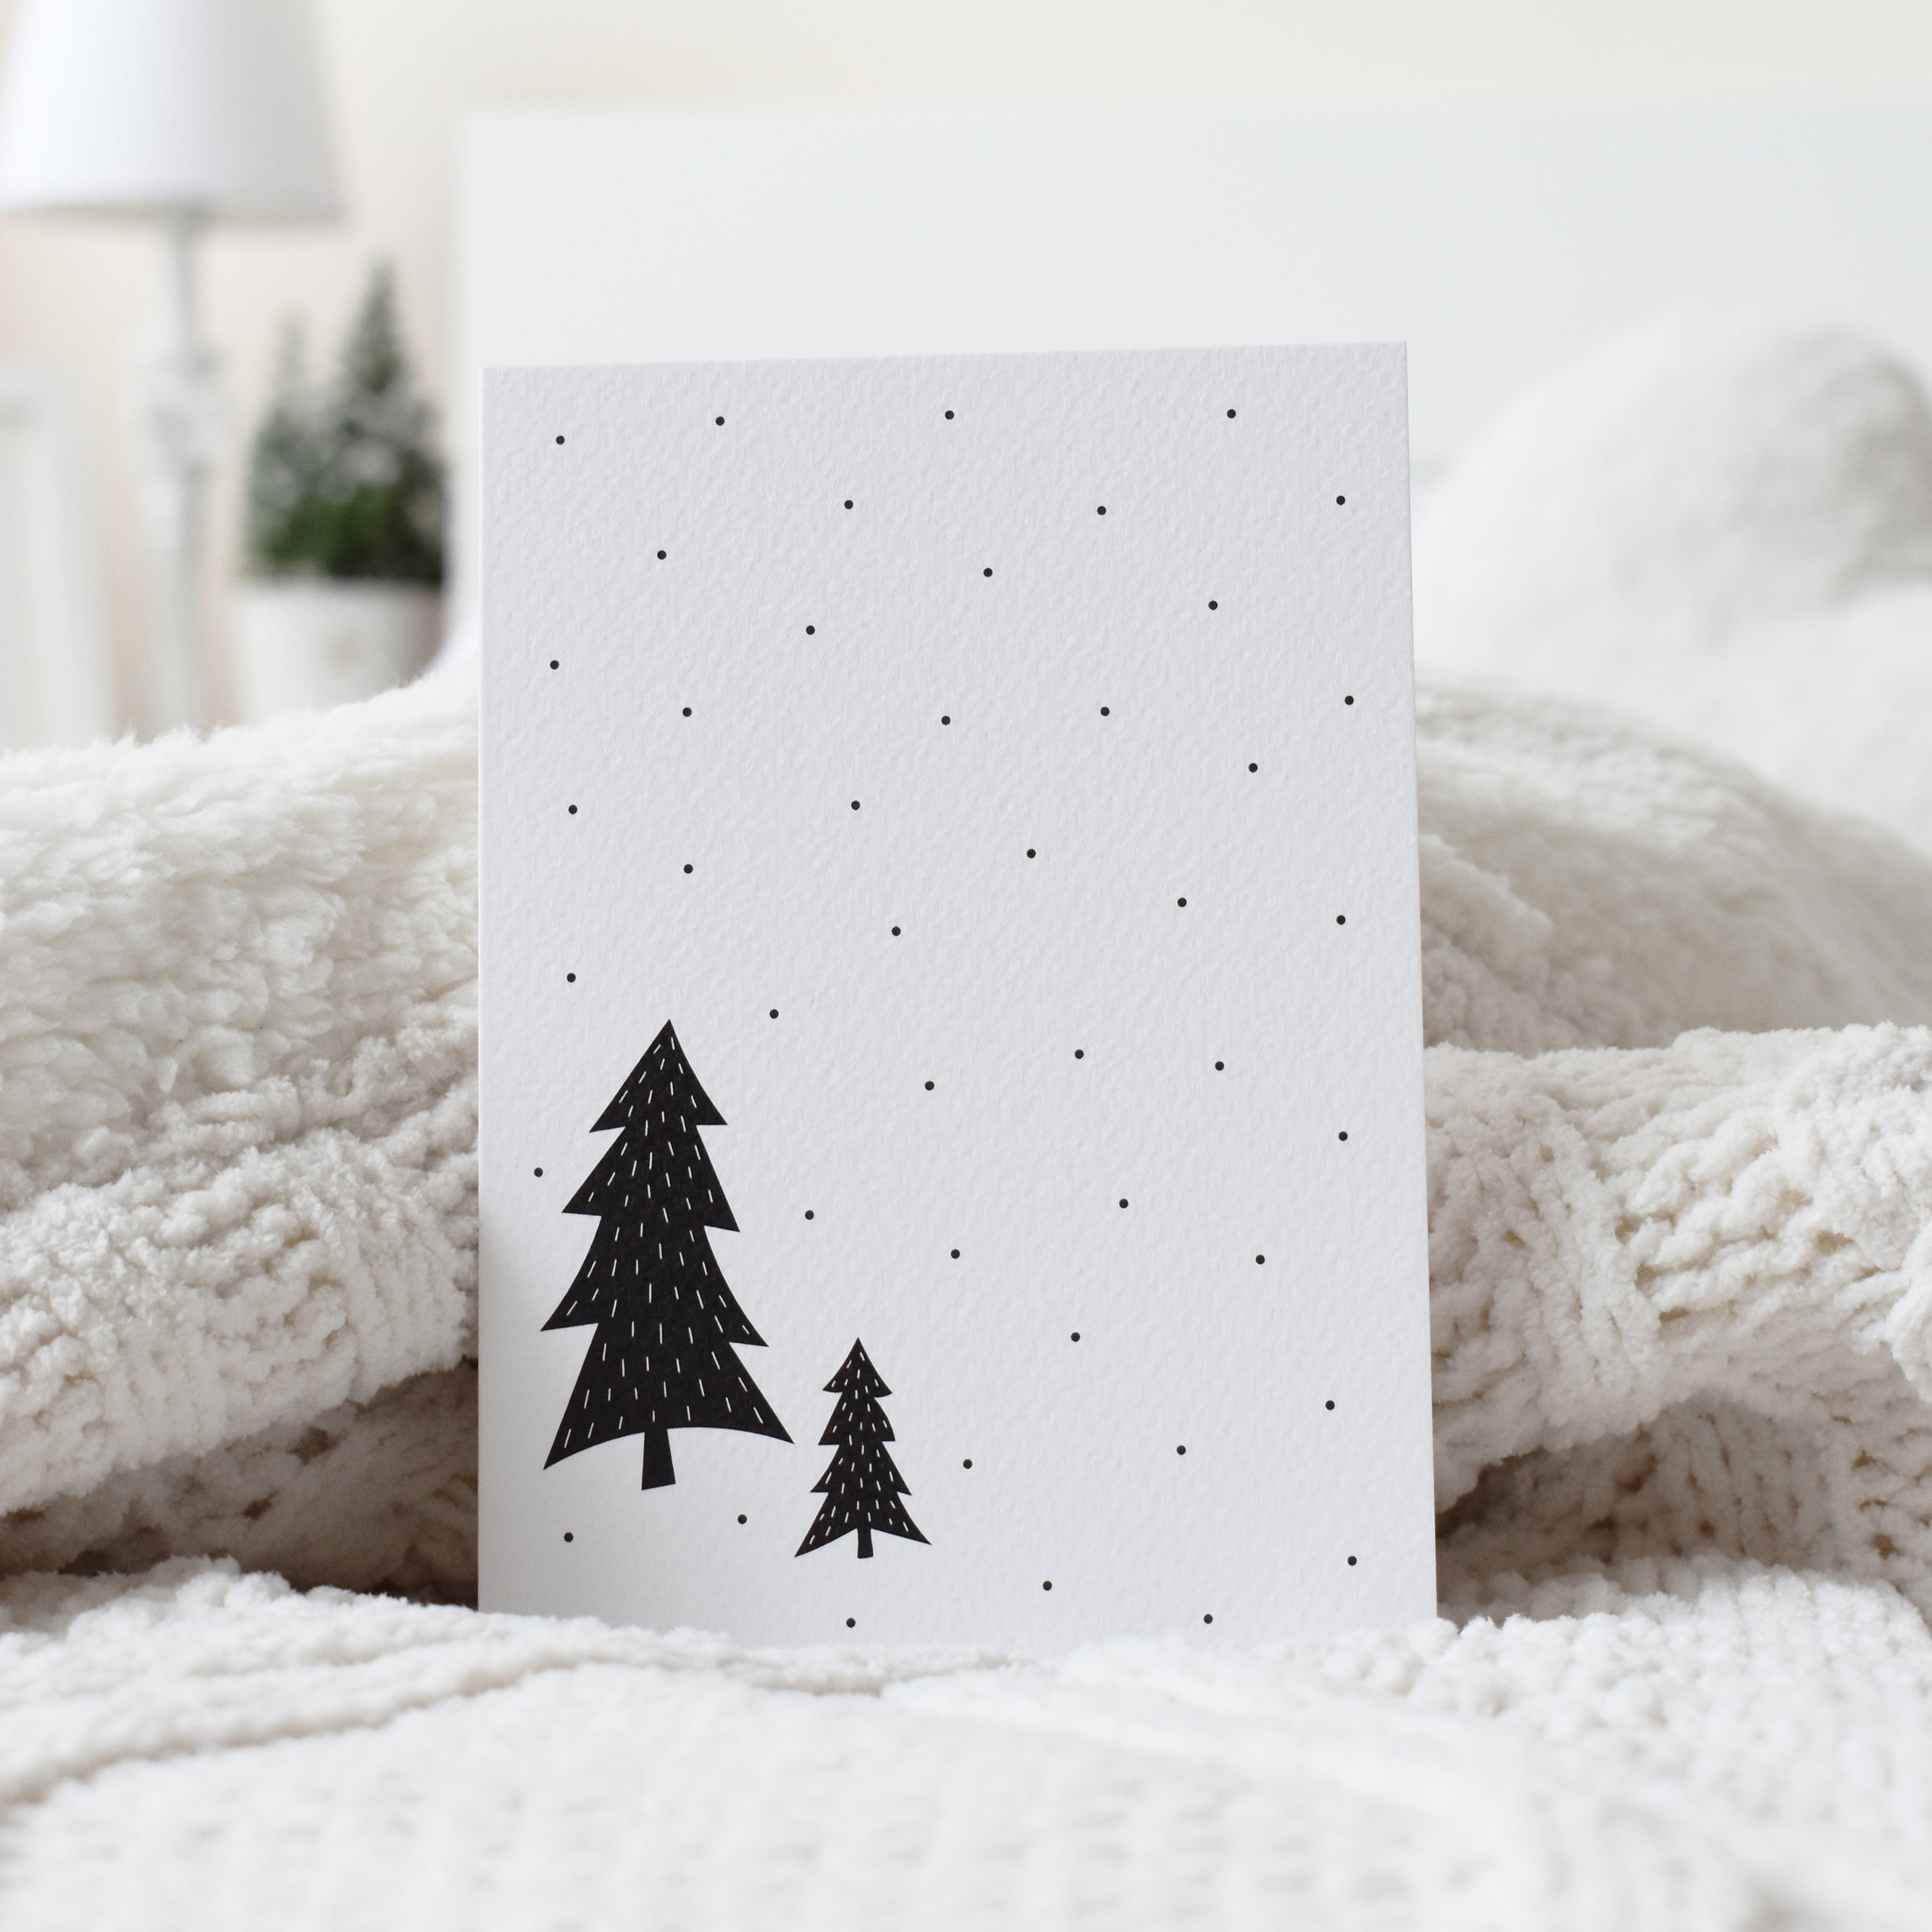 Modern black Scandinavian design Christmas card elemente design